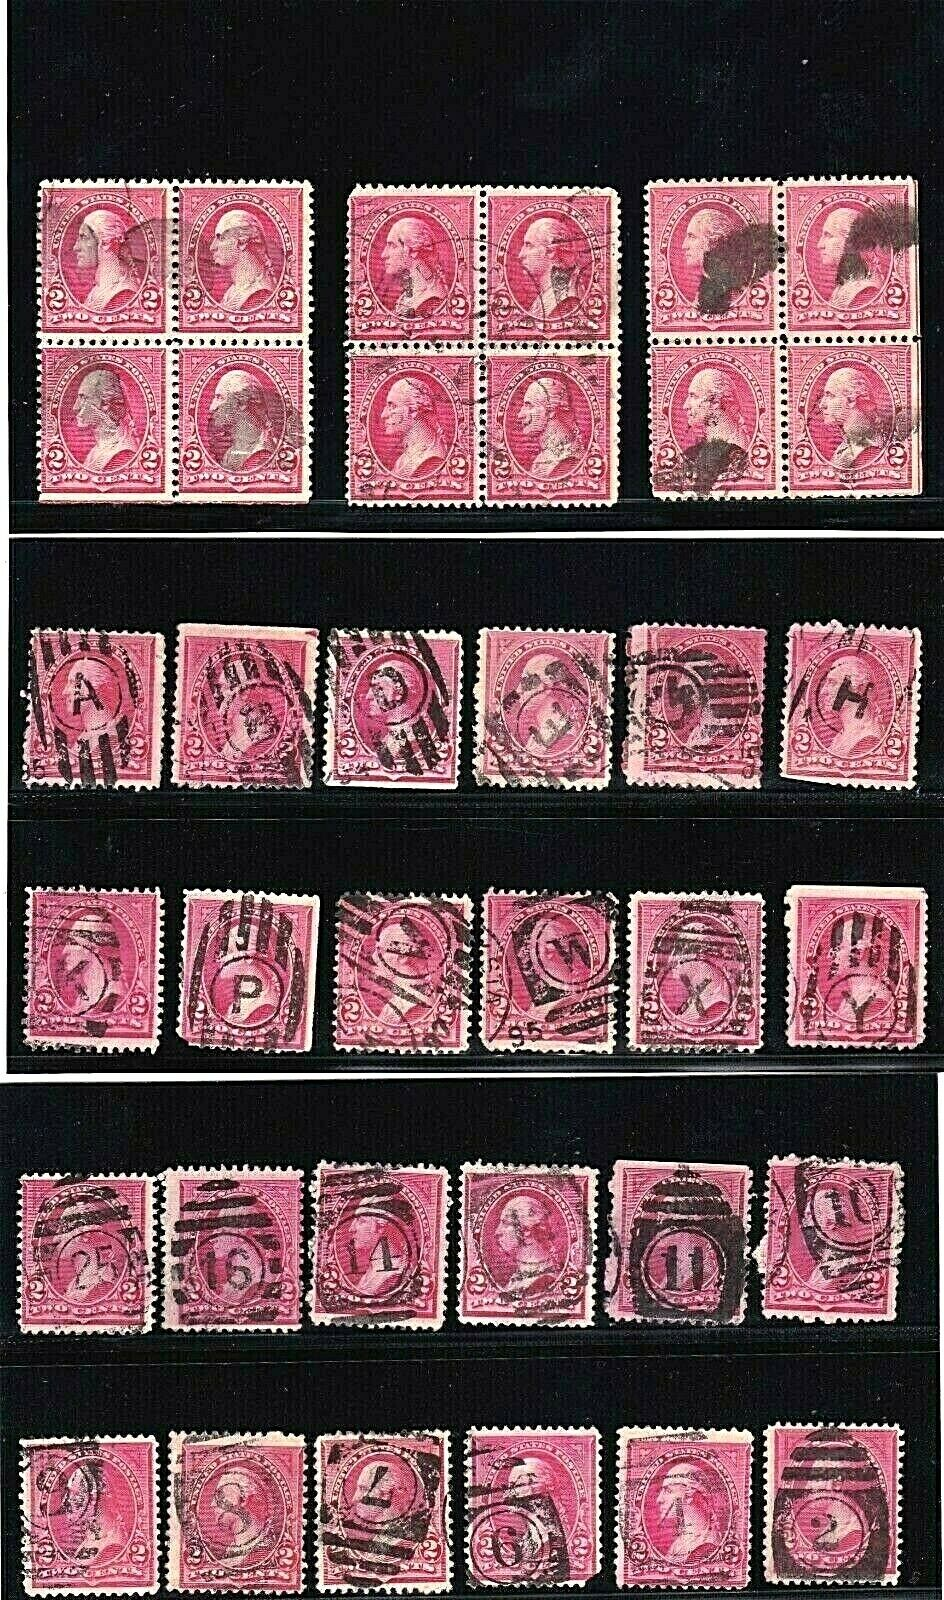 US STAMPS 19th Century Unidentified 2c Banknote Fancy Cancels And Blocks 528  - $9.50